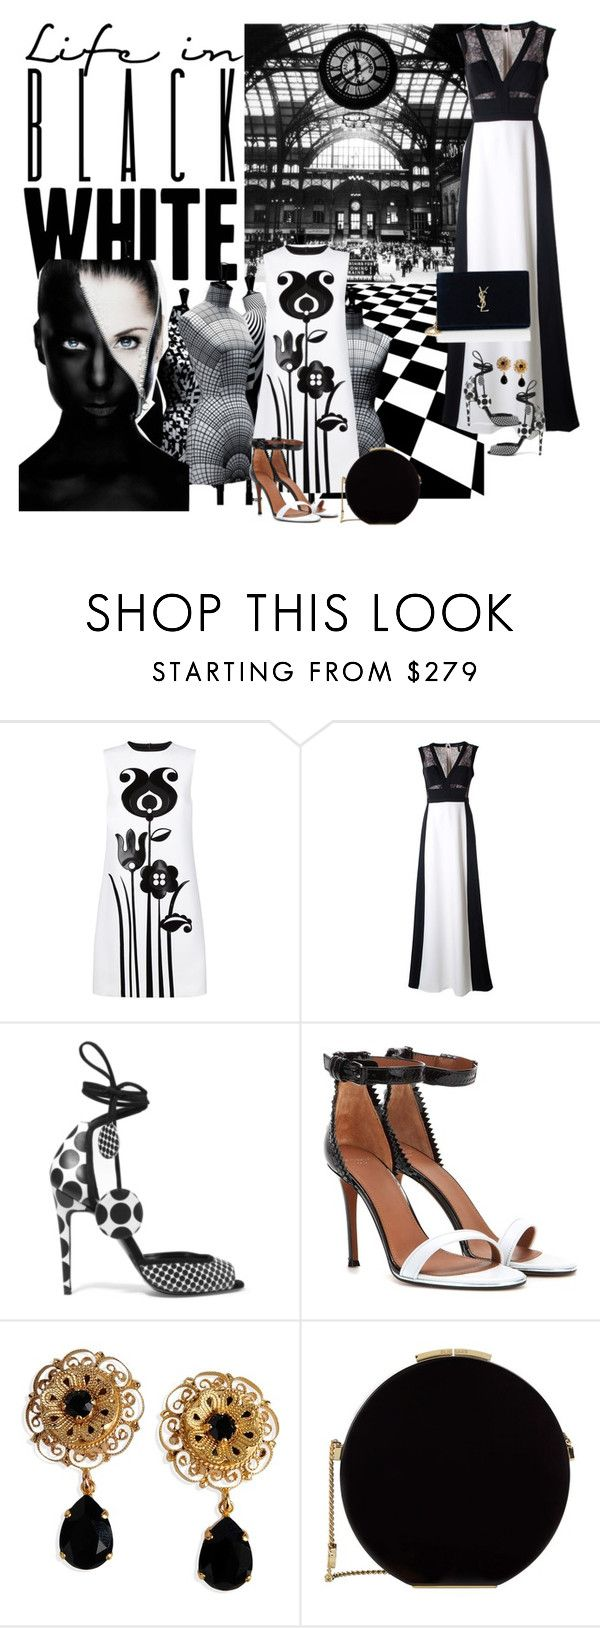 """""""Black and White"""" by obsessedaboutstyle ❤ liked on Polyvore featuring Victoria, Victoria Beckham, BCBGMAXAZRIA, Pierre Hardy, Givenchy, Dolce&Gabbana, Elie Saab, Yves Saint Laurent, blackandwhite, StyleBlogger and polyvoreeditorial"""